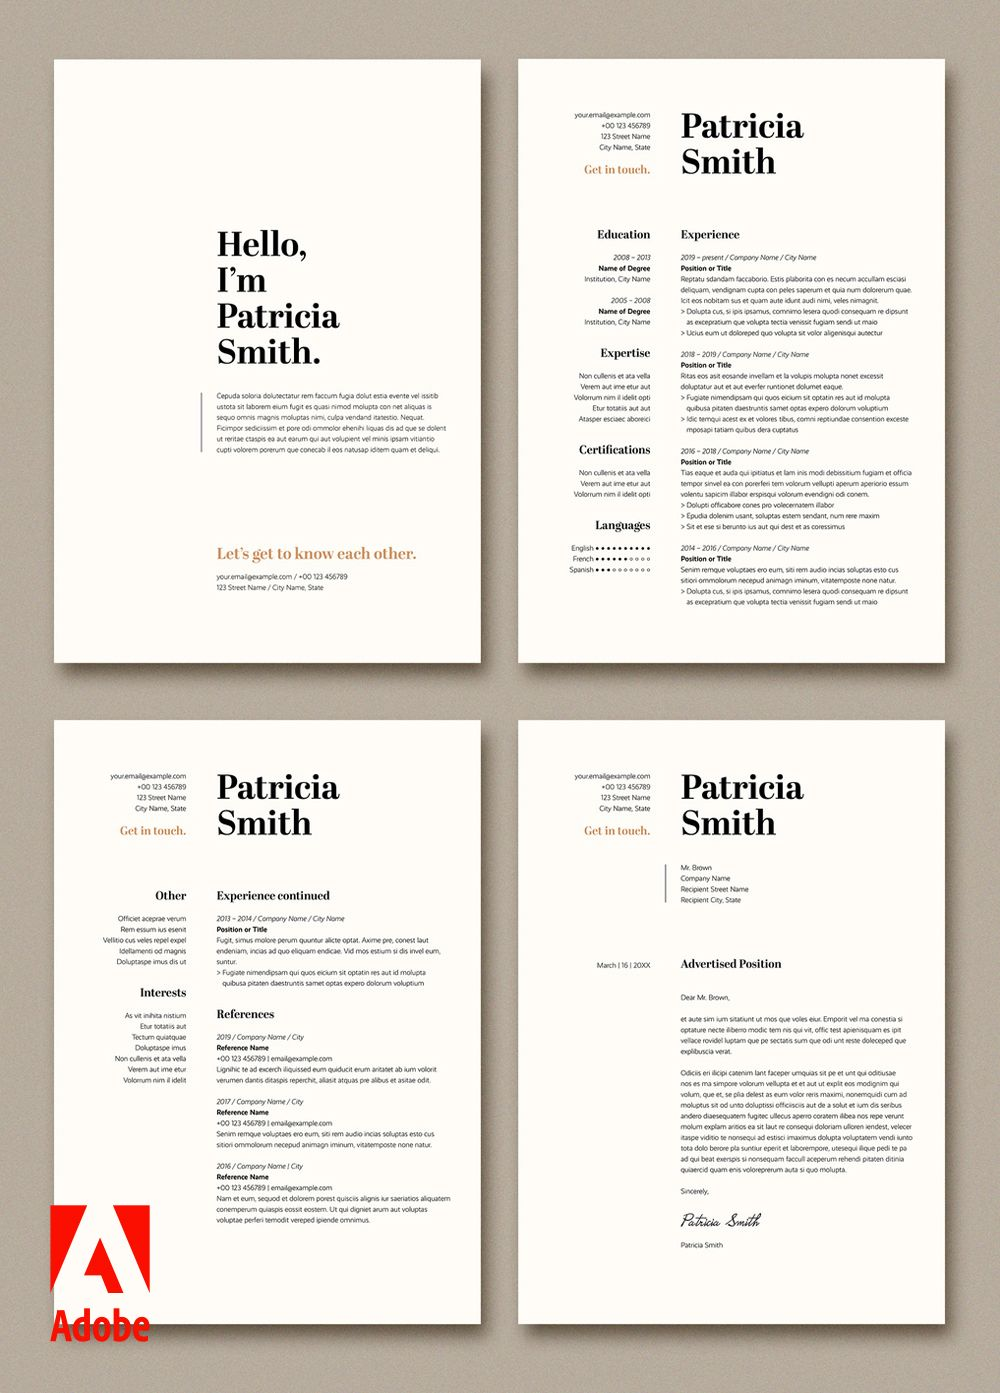 Create opportunities with adobe stock try this resume and